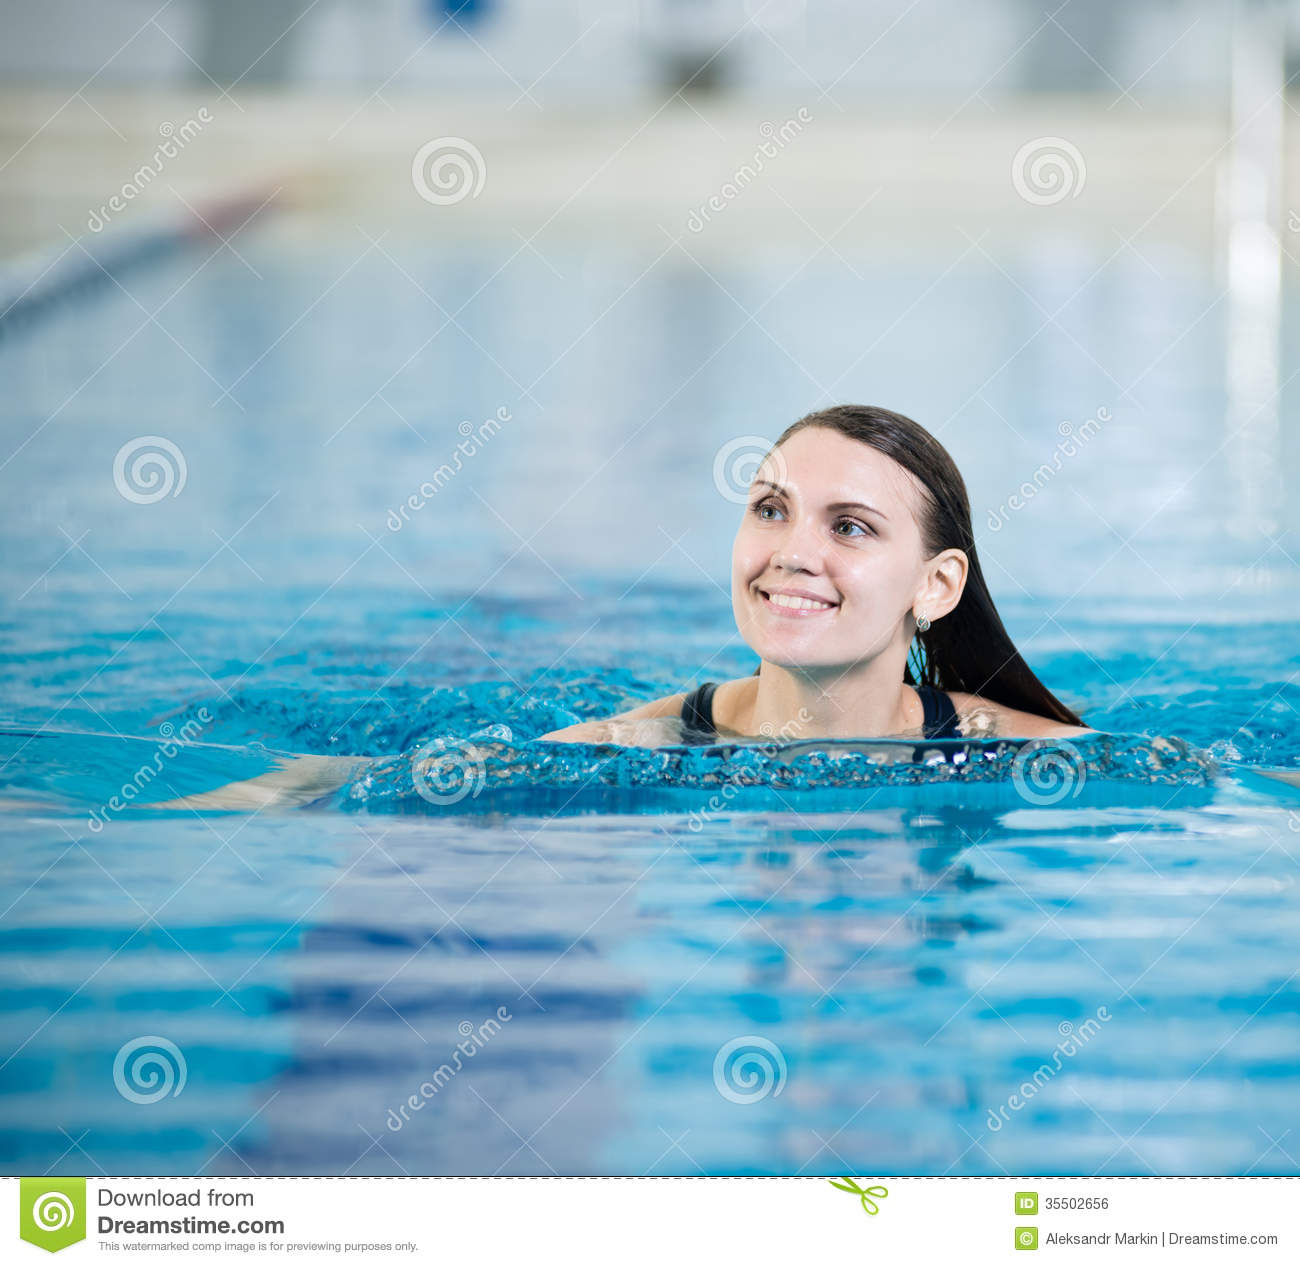 Portrait Of A Young Woman In Sport Swimming Pool Stock Photo Image 35502656